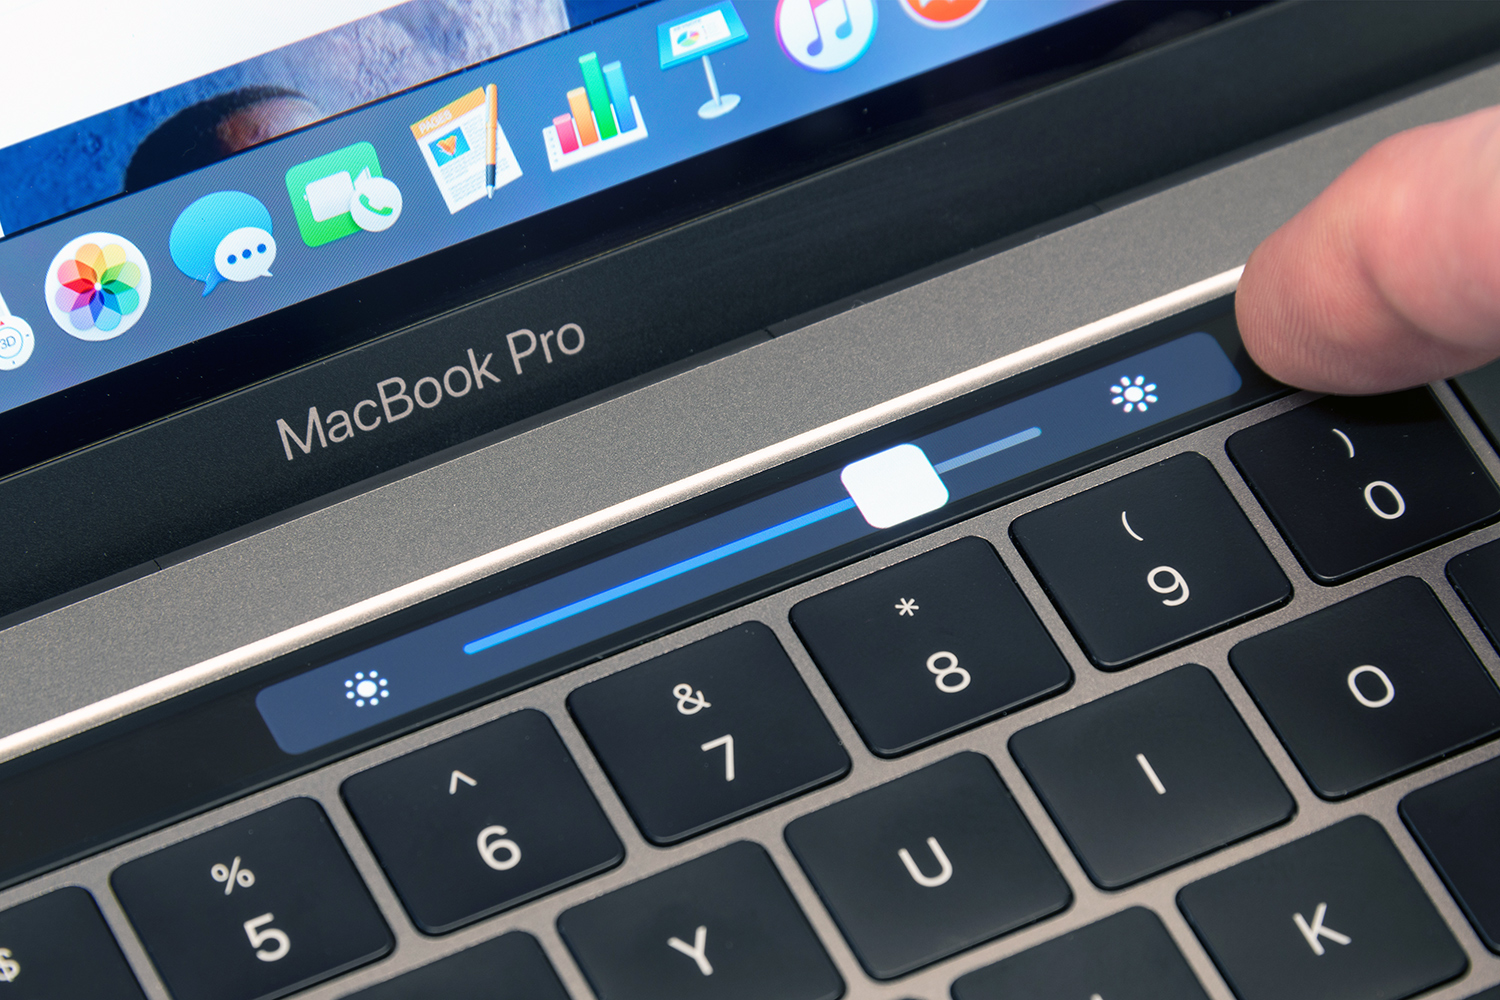 Apple reportedly designing its own chip for Mac laptops